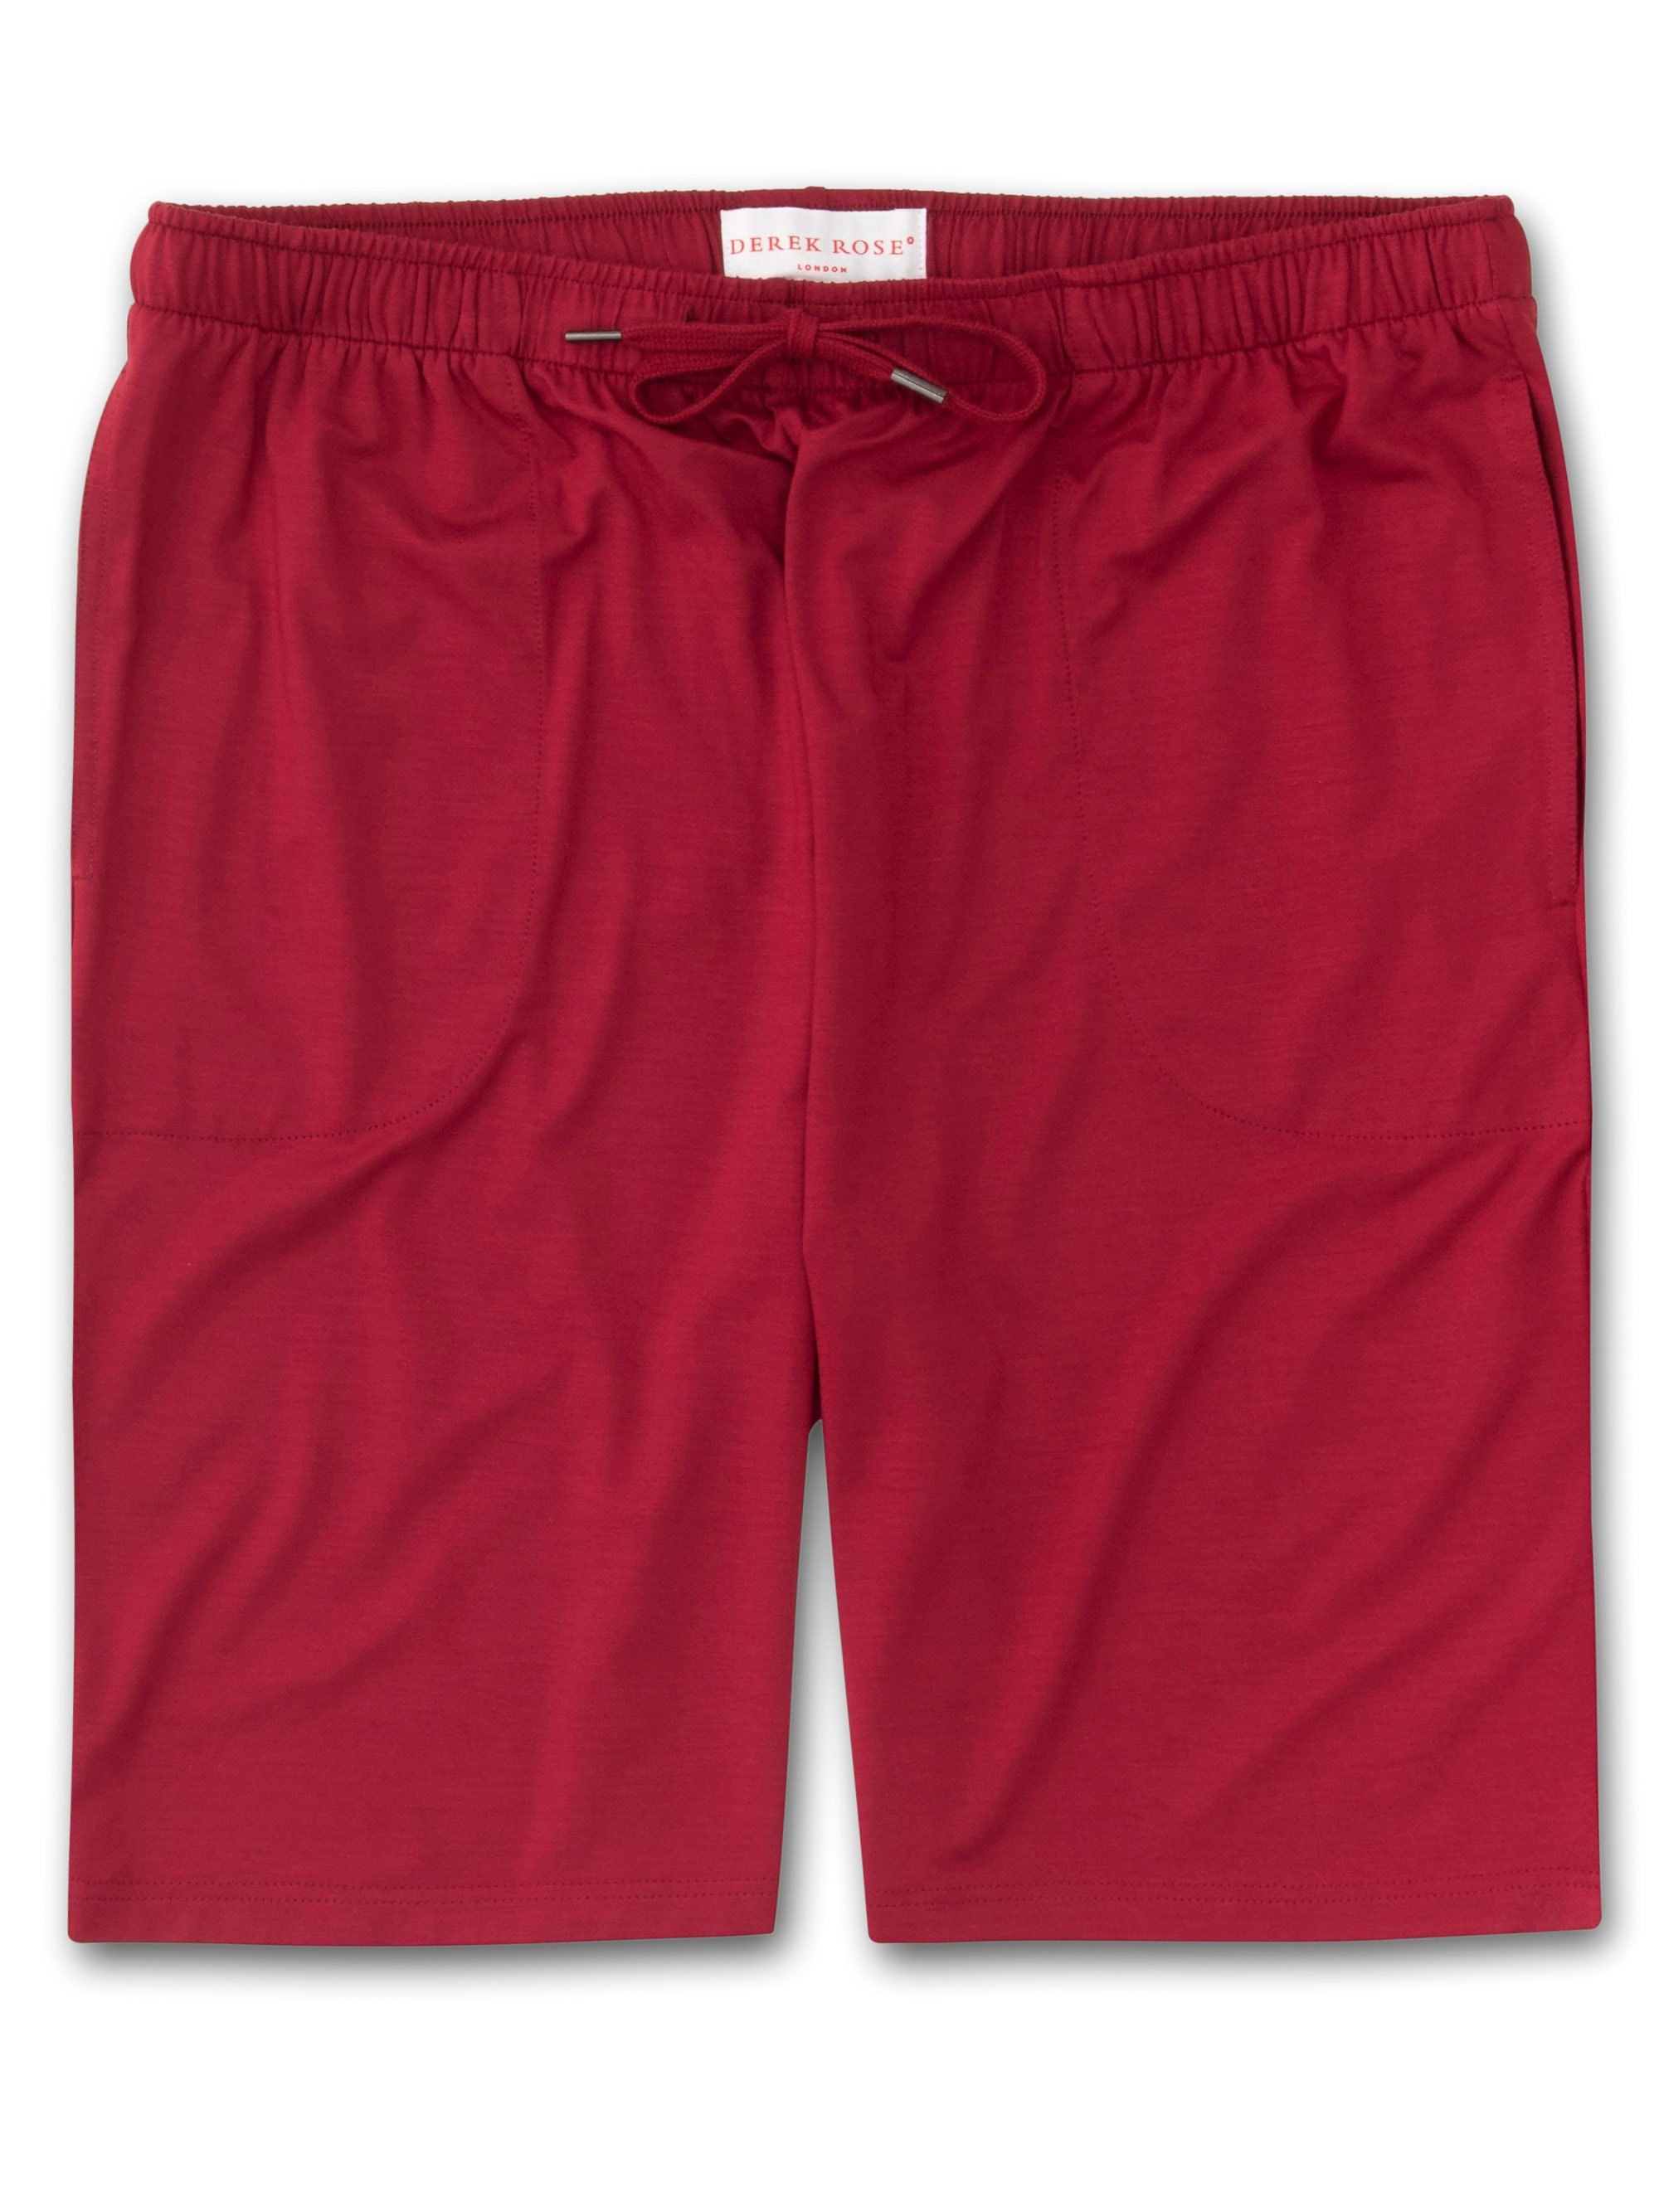 Men's Jersey Shorts Basel 8 Micro Modal Stretch Red